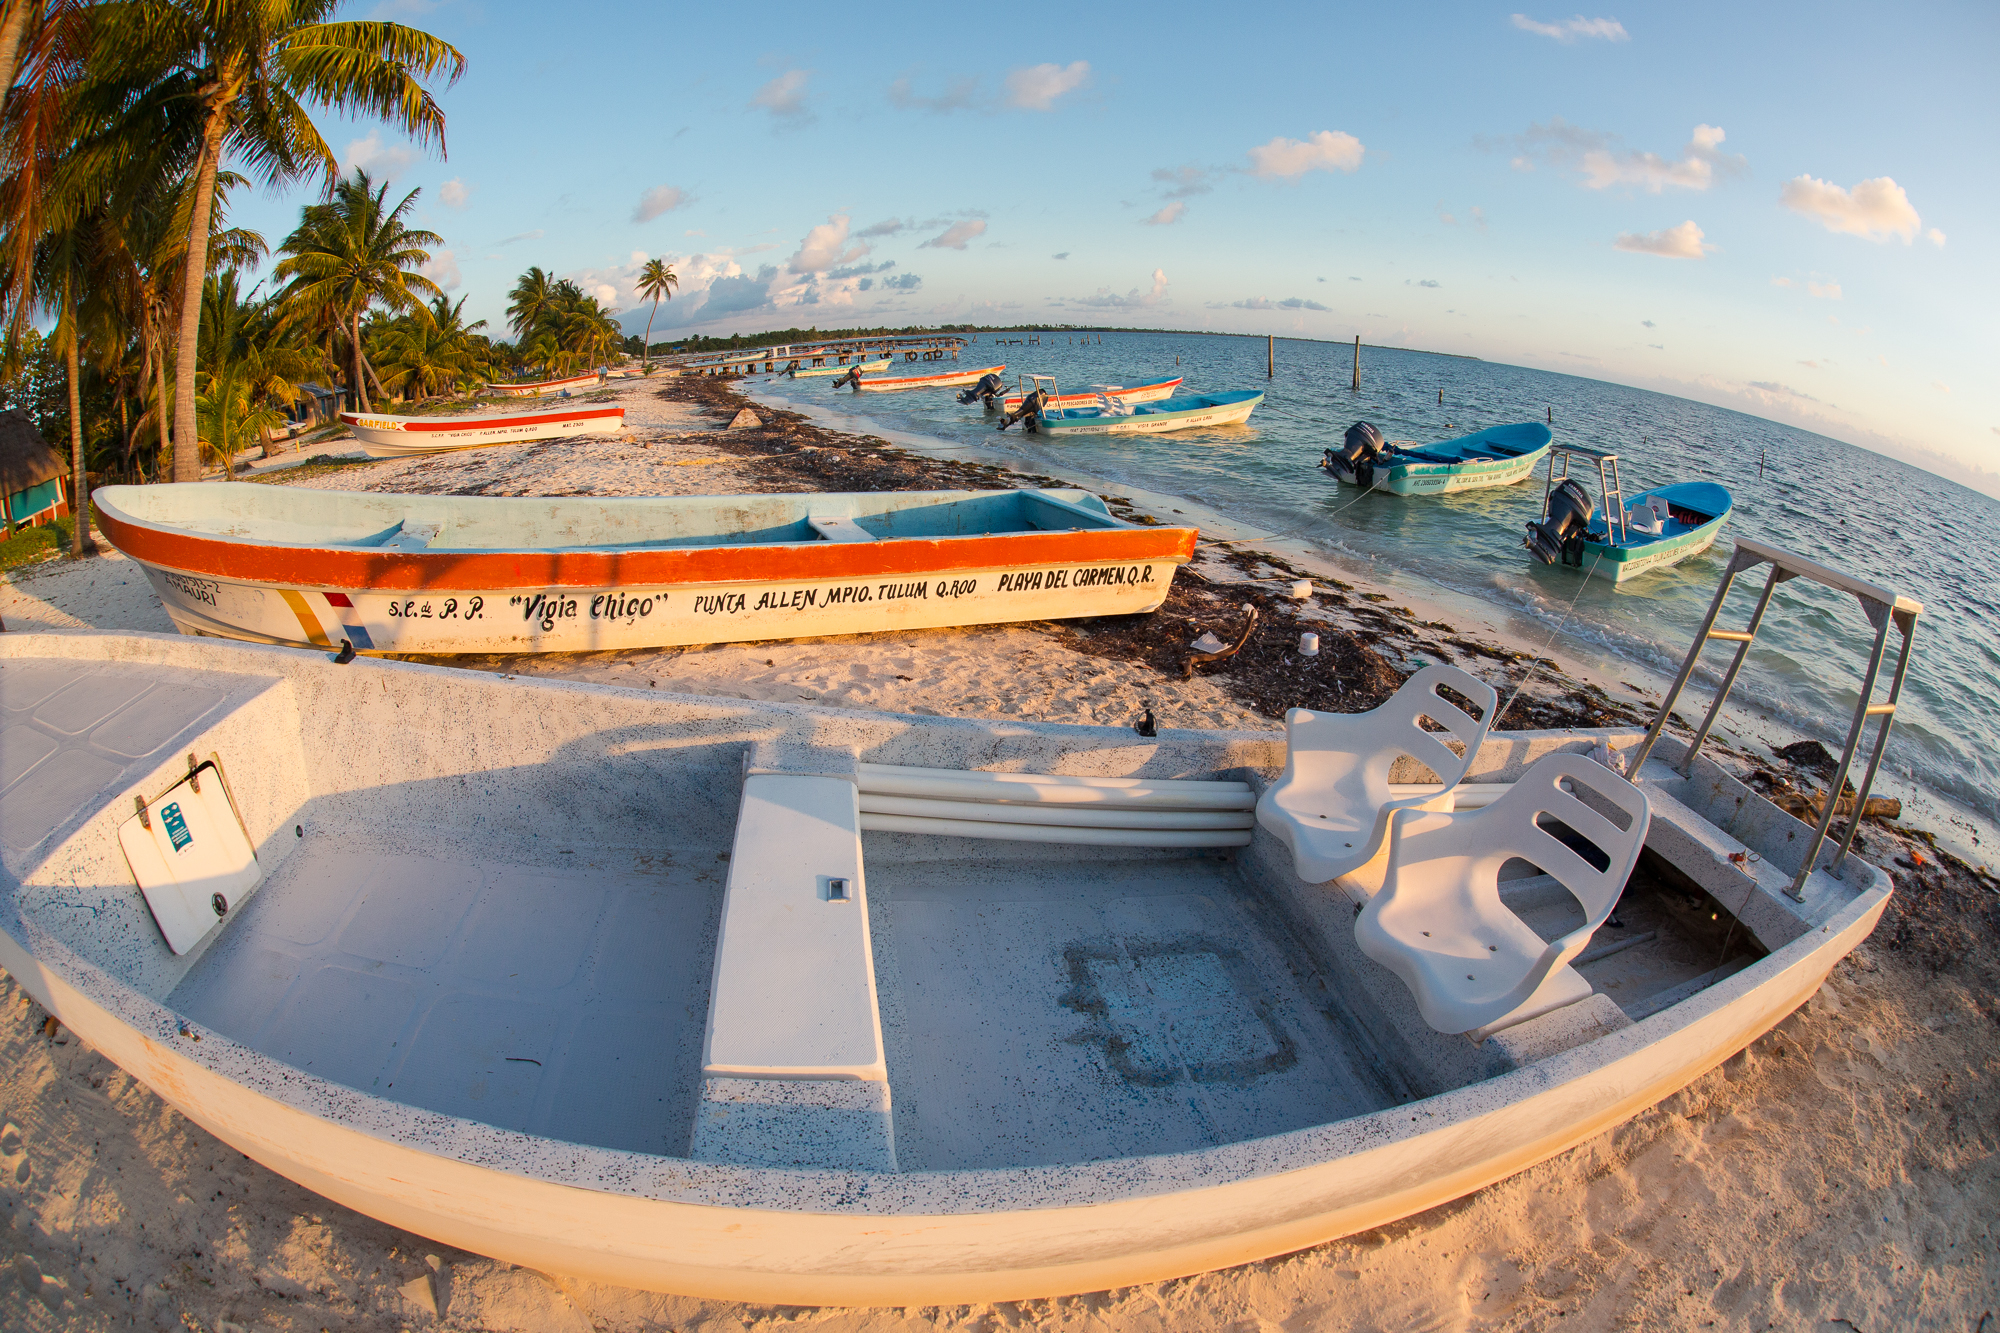 Mexican panga boats can navigate remarkably skinny water, almost as skinny as the most advanced modern flats skiffs. Unlike flats skiffs, however, panga boats have the brawn to handle often encountered swell and chop that is part of the long runs across Ascension Bay. (photo: Chad Shmukler)